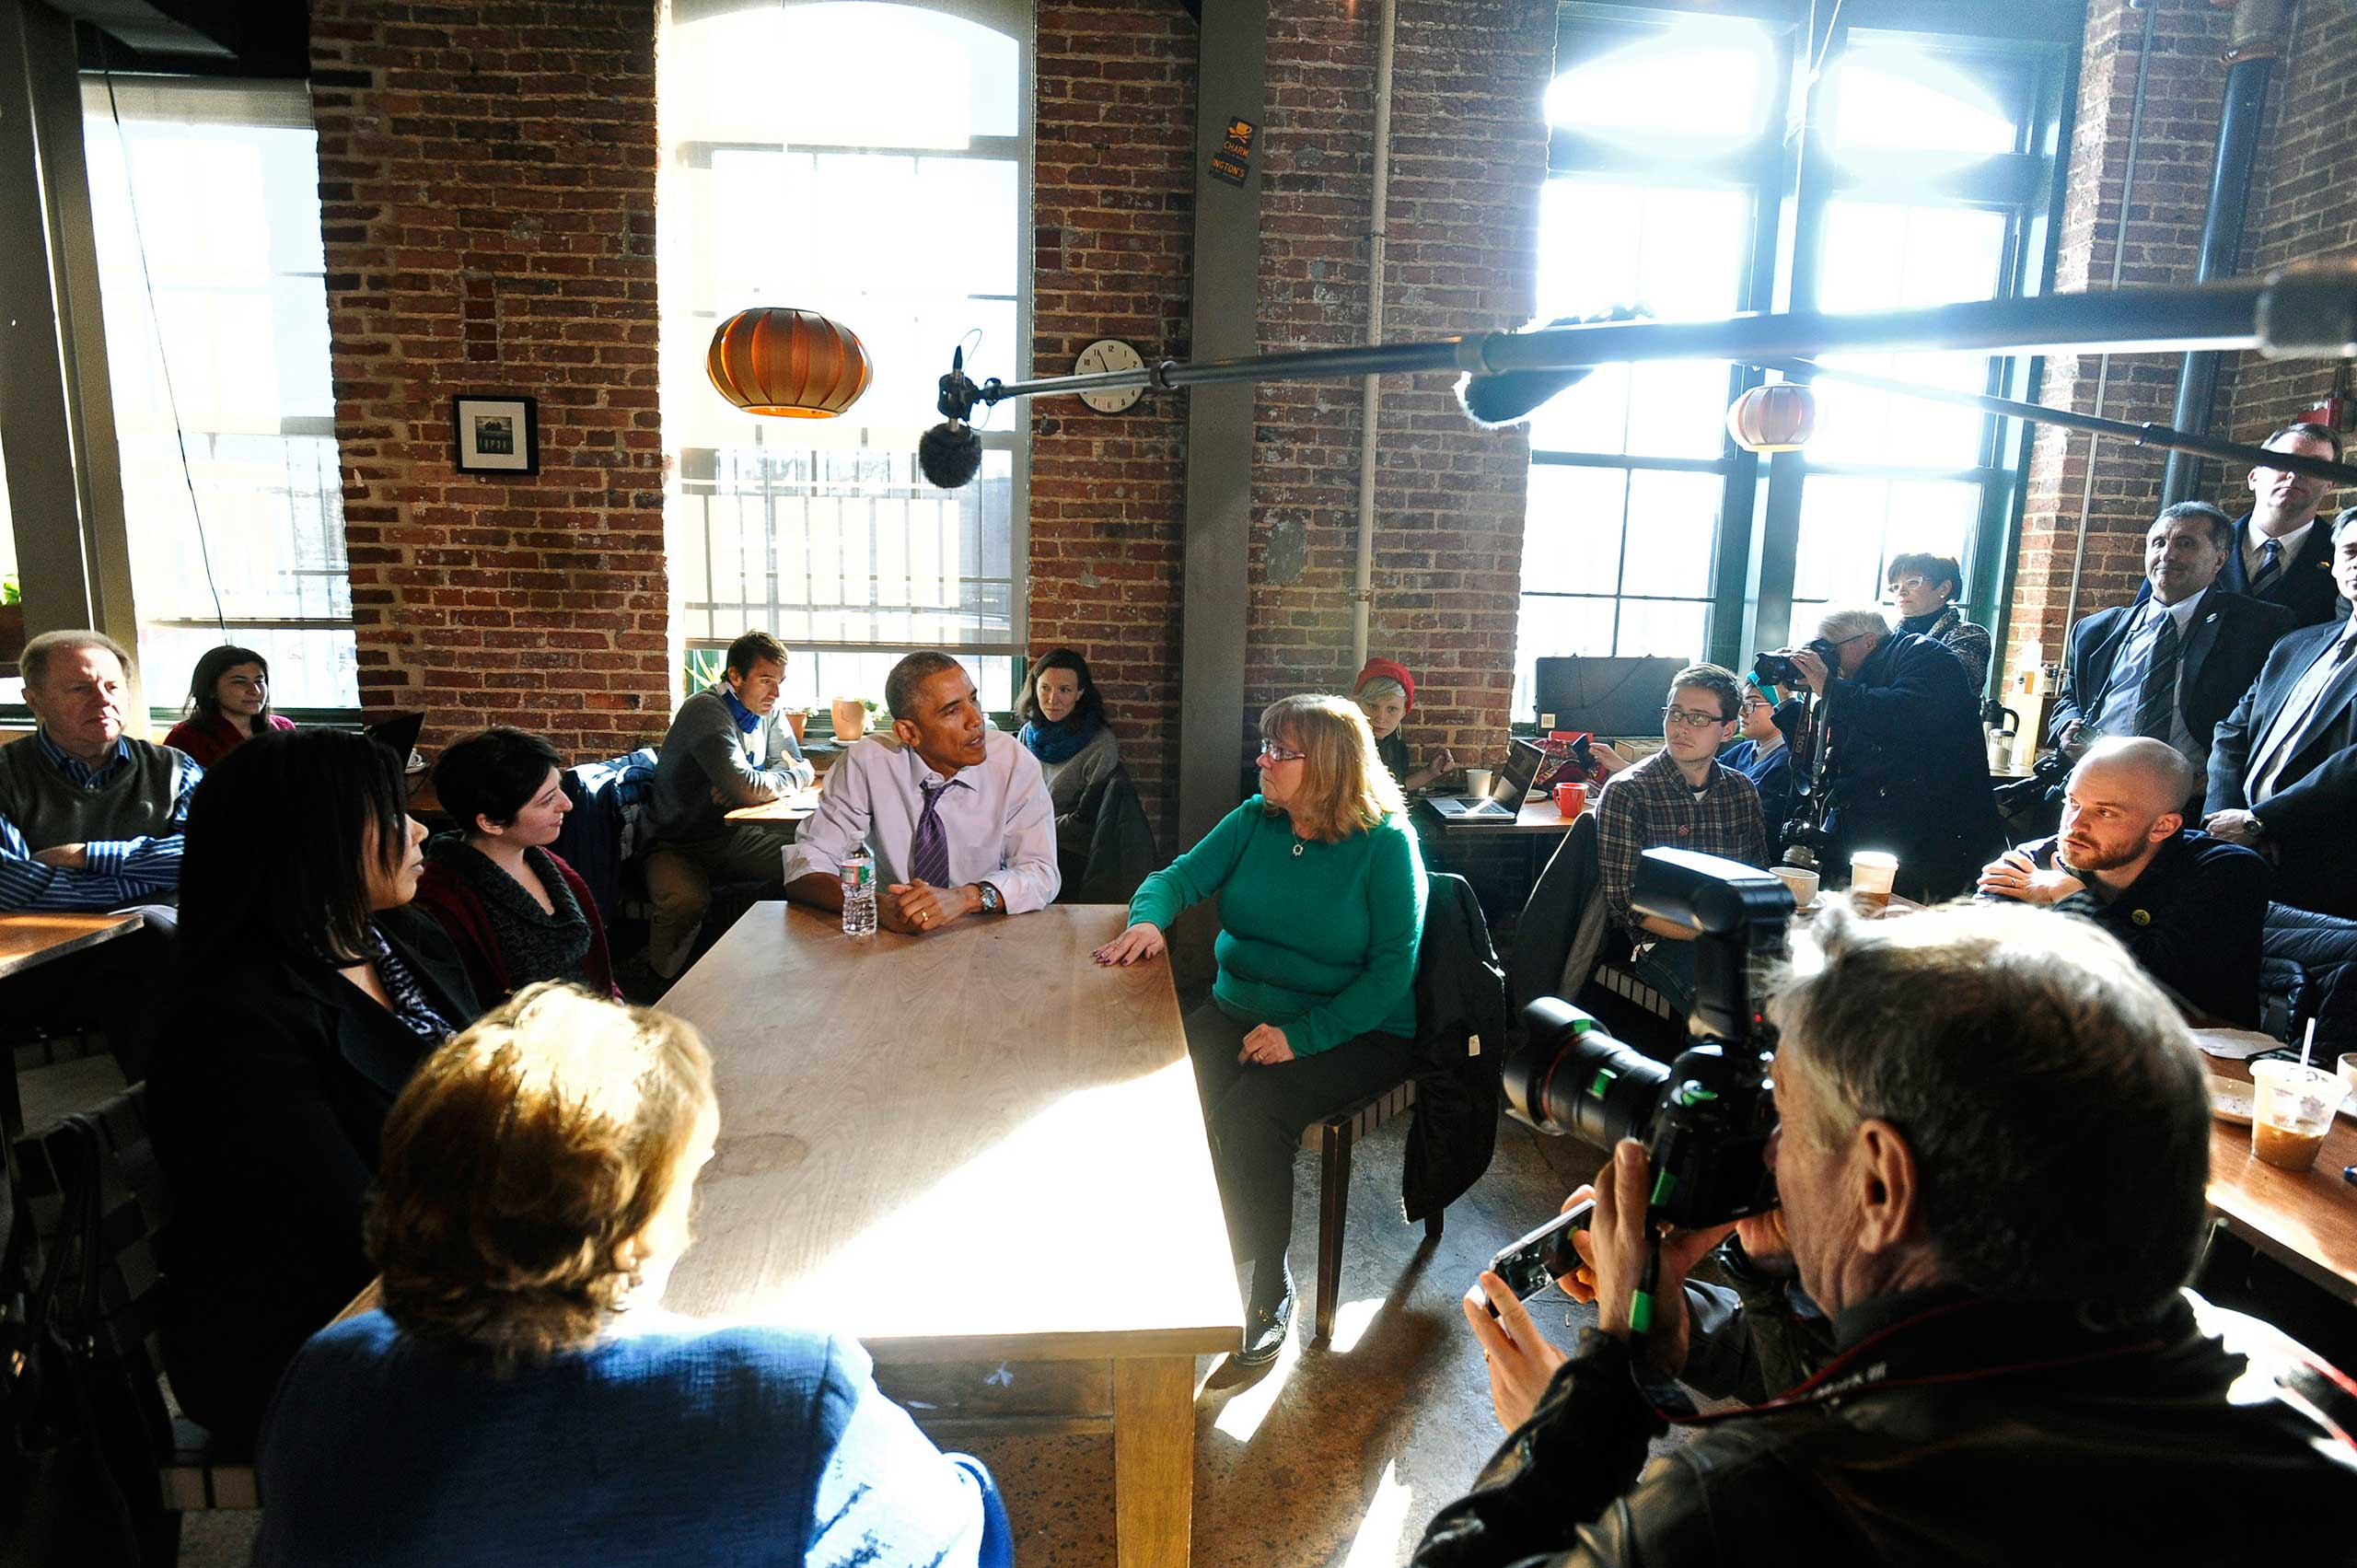 President Barack Obama eats lunch at Charmington's Cafe with Vika Jordan, Amanda Rothschild, and Mary Stein to discuss the needs of all Americans as they balance their families and jobs on Jan. 15, 2015 in Baltimore.